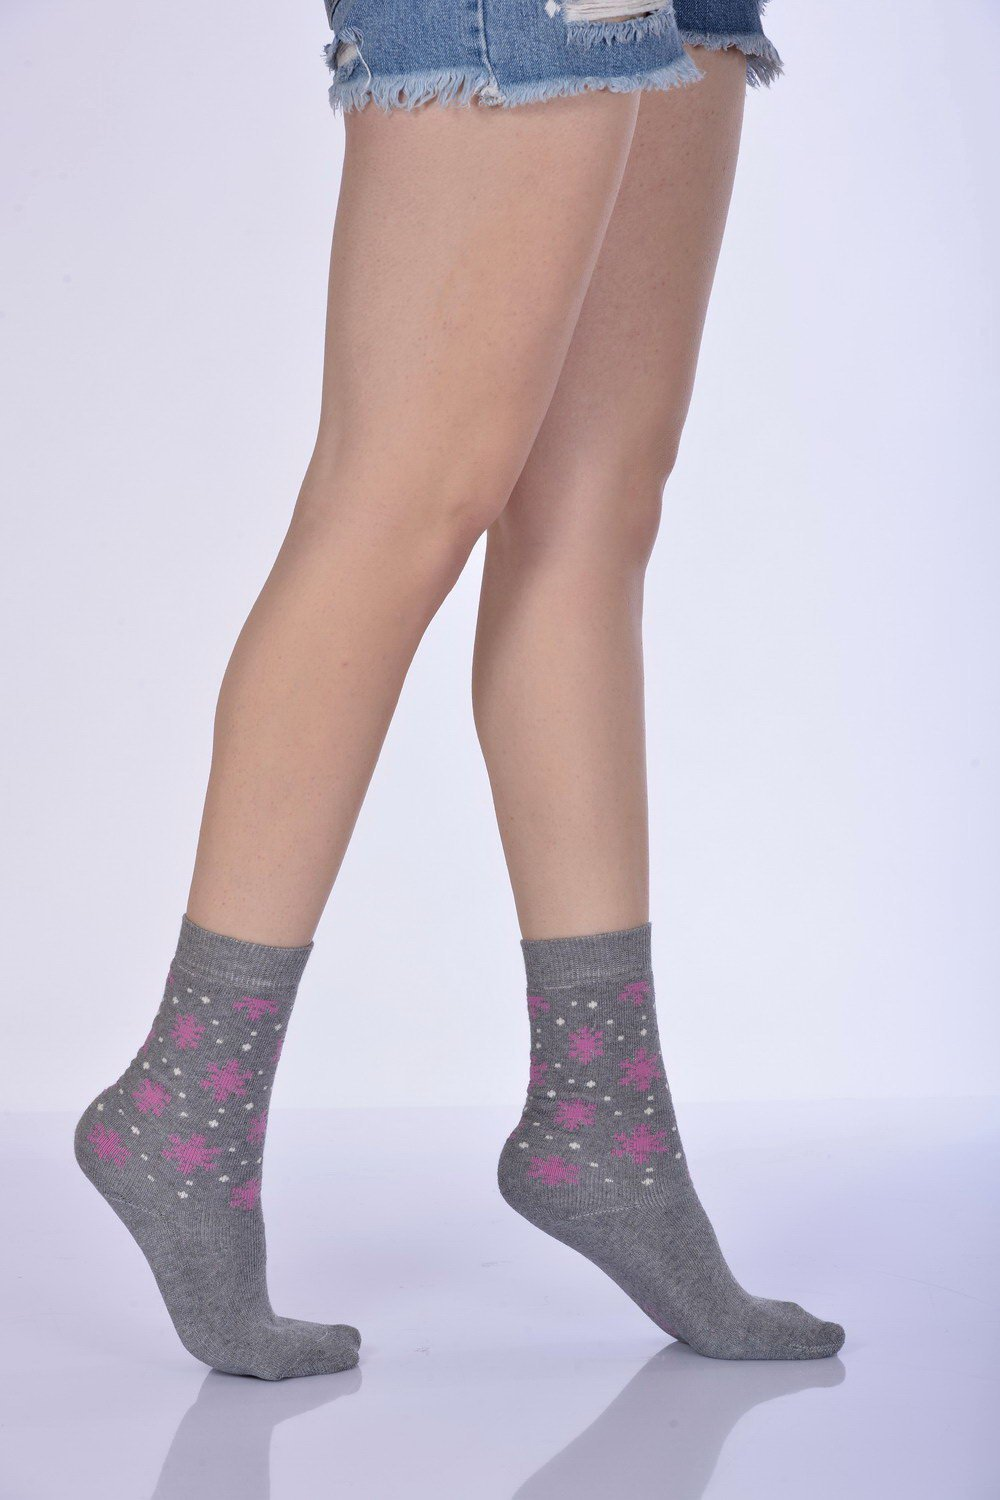 Women's Printed Grey Winter Socket Socks- 3 Pairs